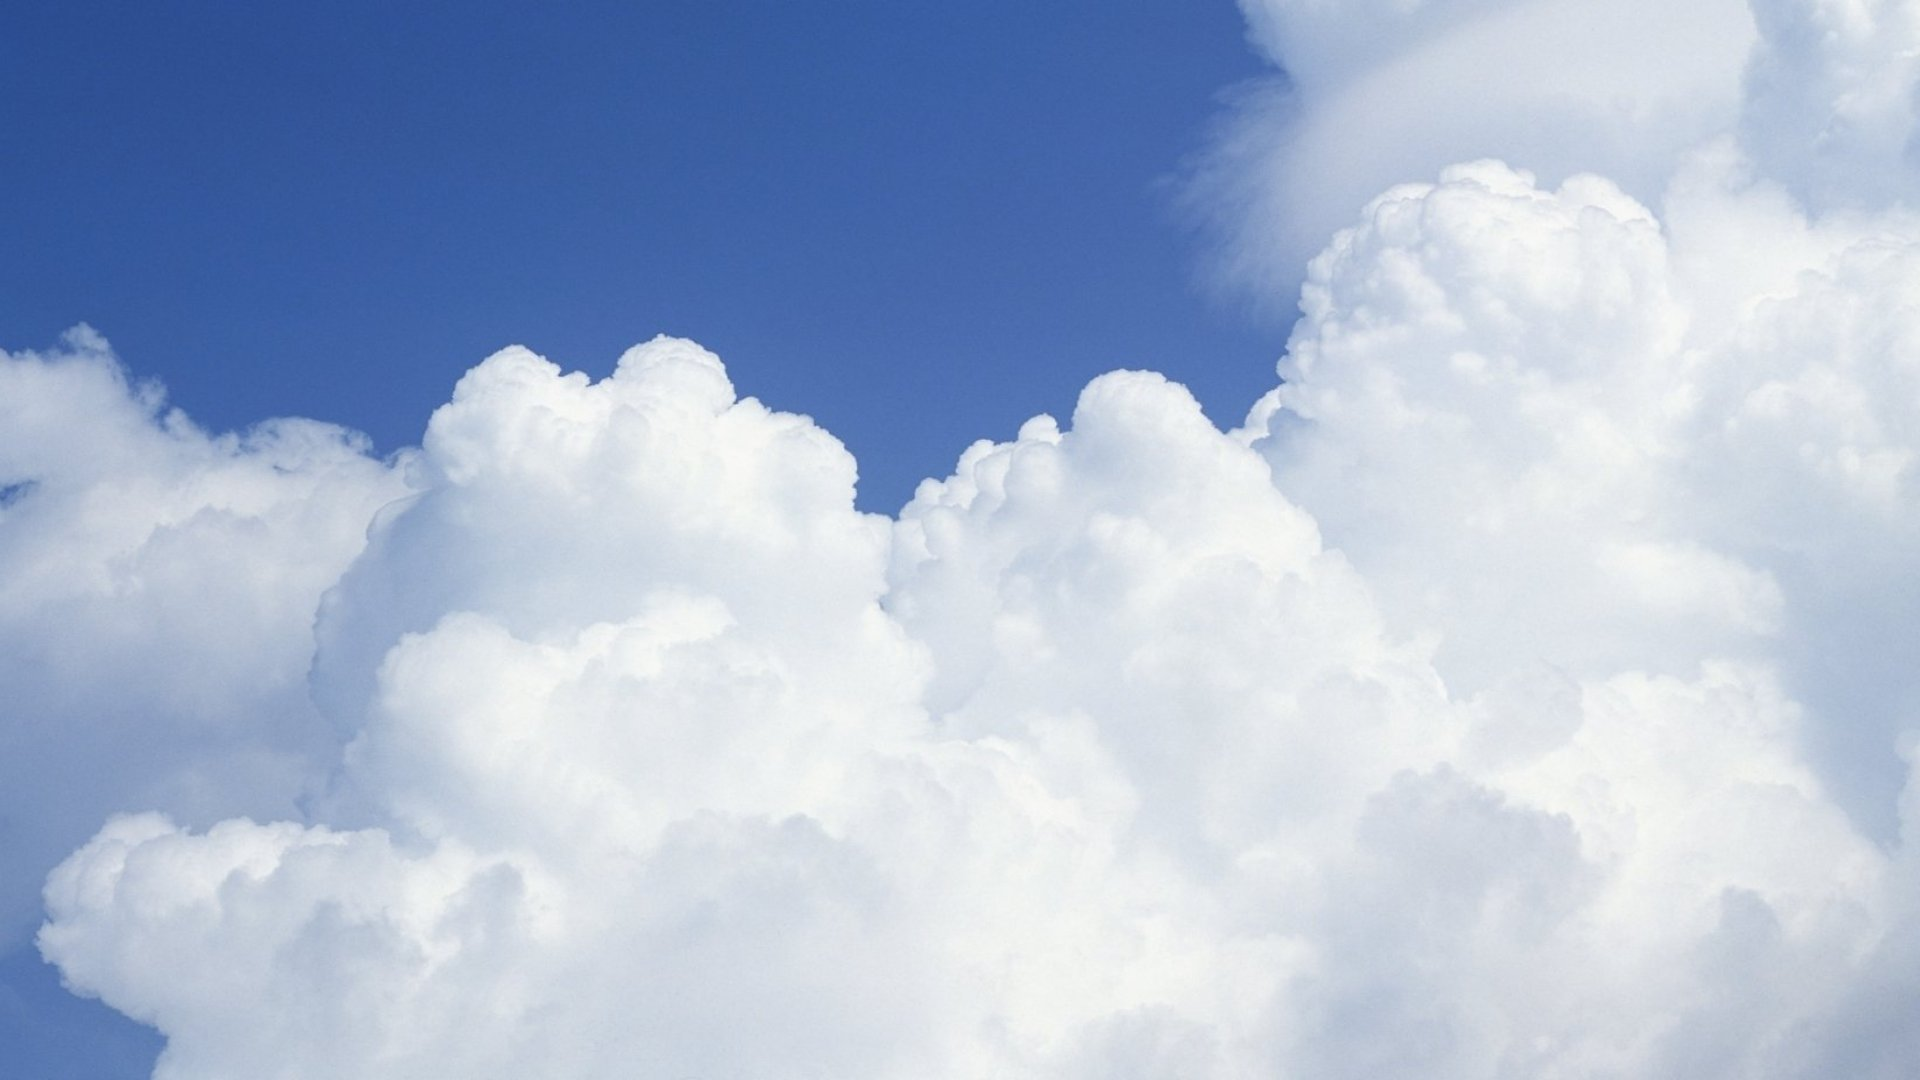 Public or Private Cloud? 5 Things to Consider